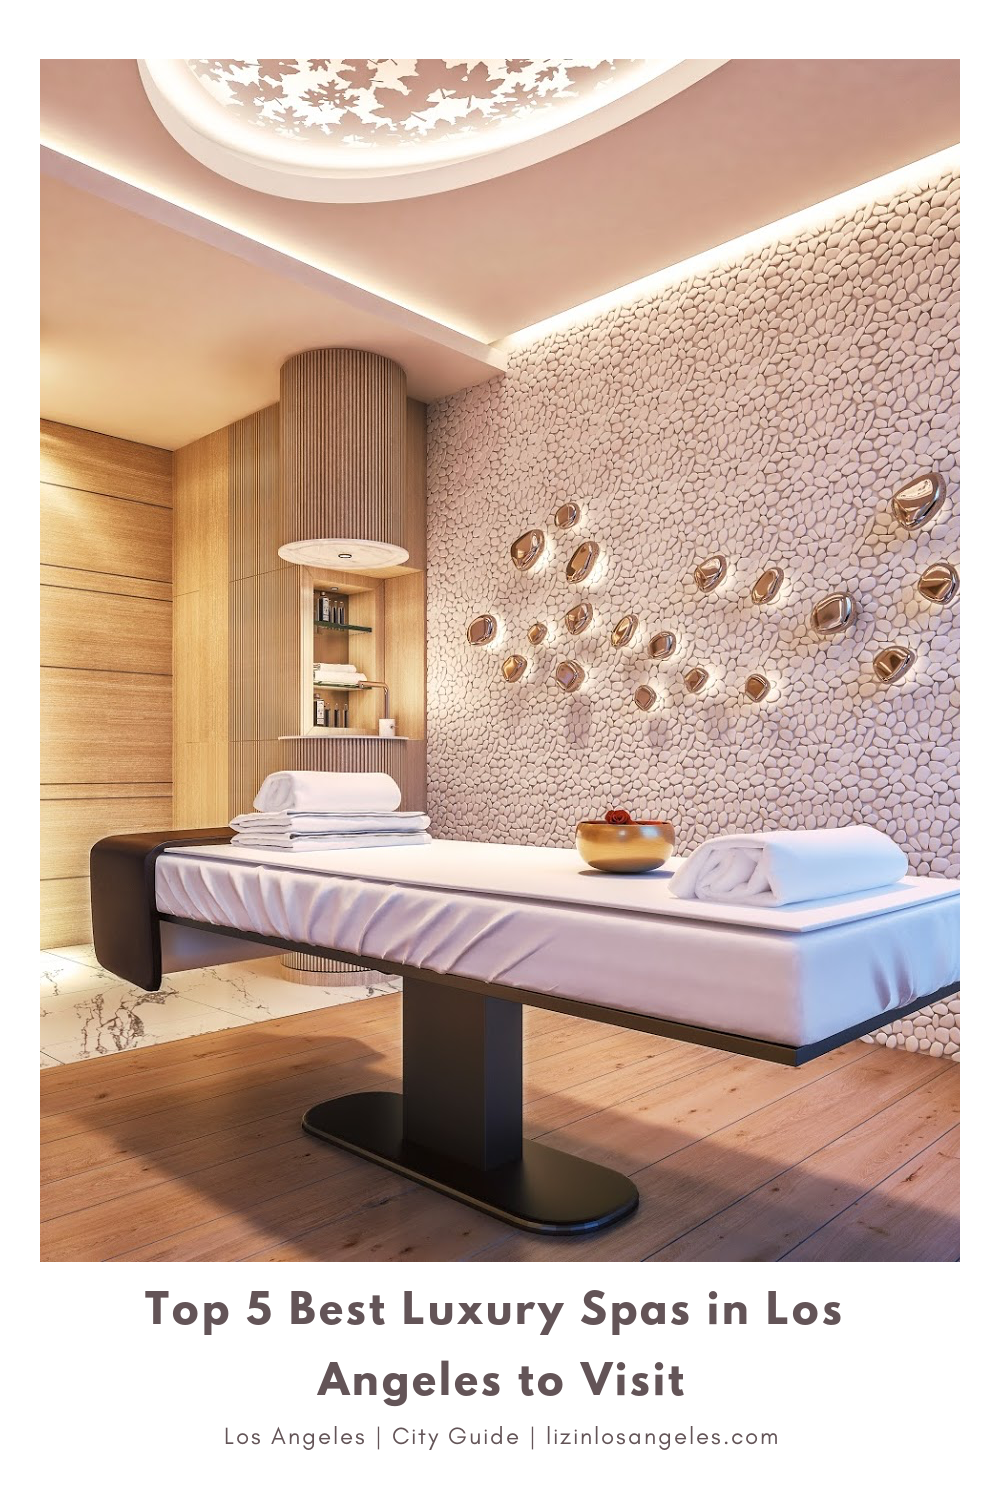 Top 5 Best Luxury Spas in Los Angeles to Visit, a blog post by Liz in Los Angeles, Los Angeles lifestyle blogger, an image of a luxury spa